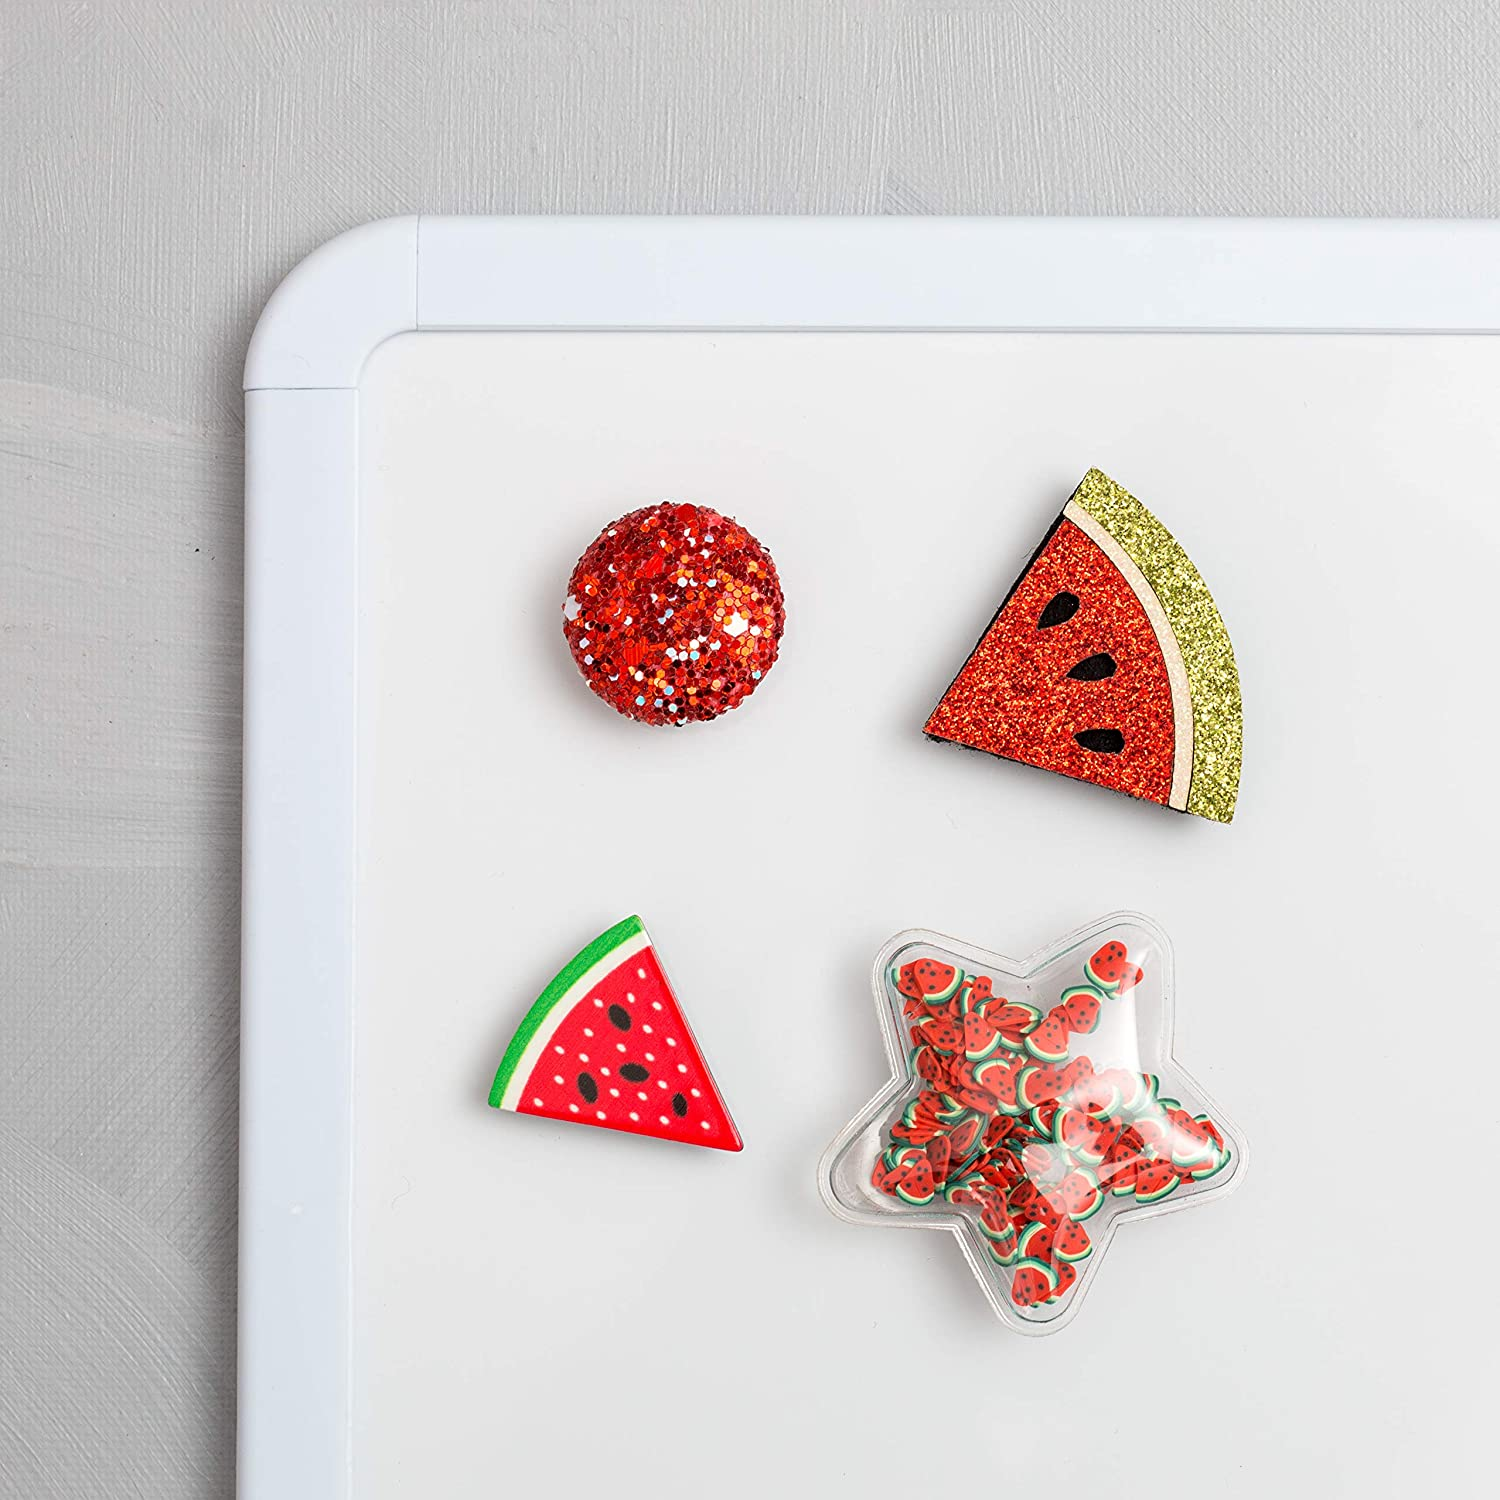 Refrigerator Magnets - Decorative Fridge Magnet Set - 4 Fridge Magnets for Cabinets, Whiteboards & Lockers - Colorful Magnets for Gift, Home Decor & Practical use - Watermelon Delight